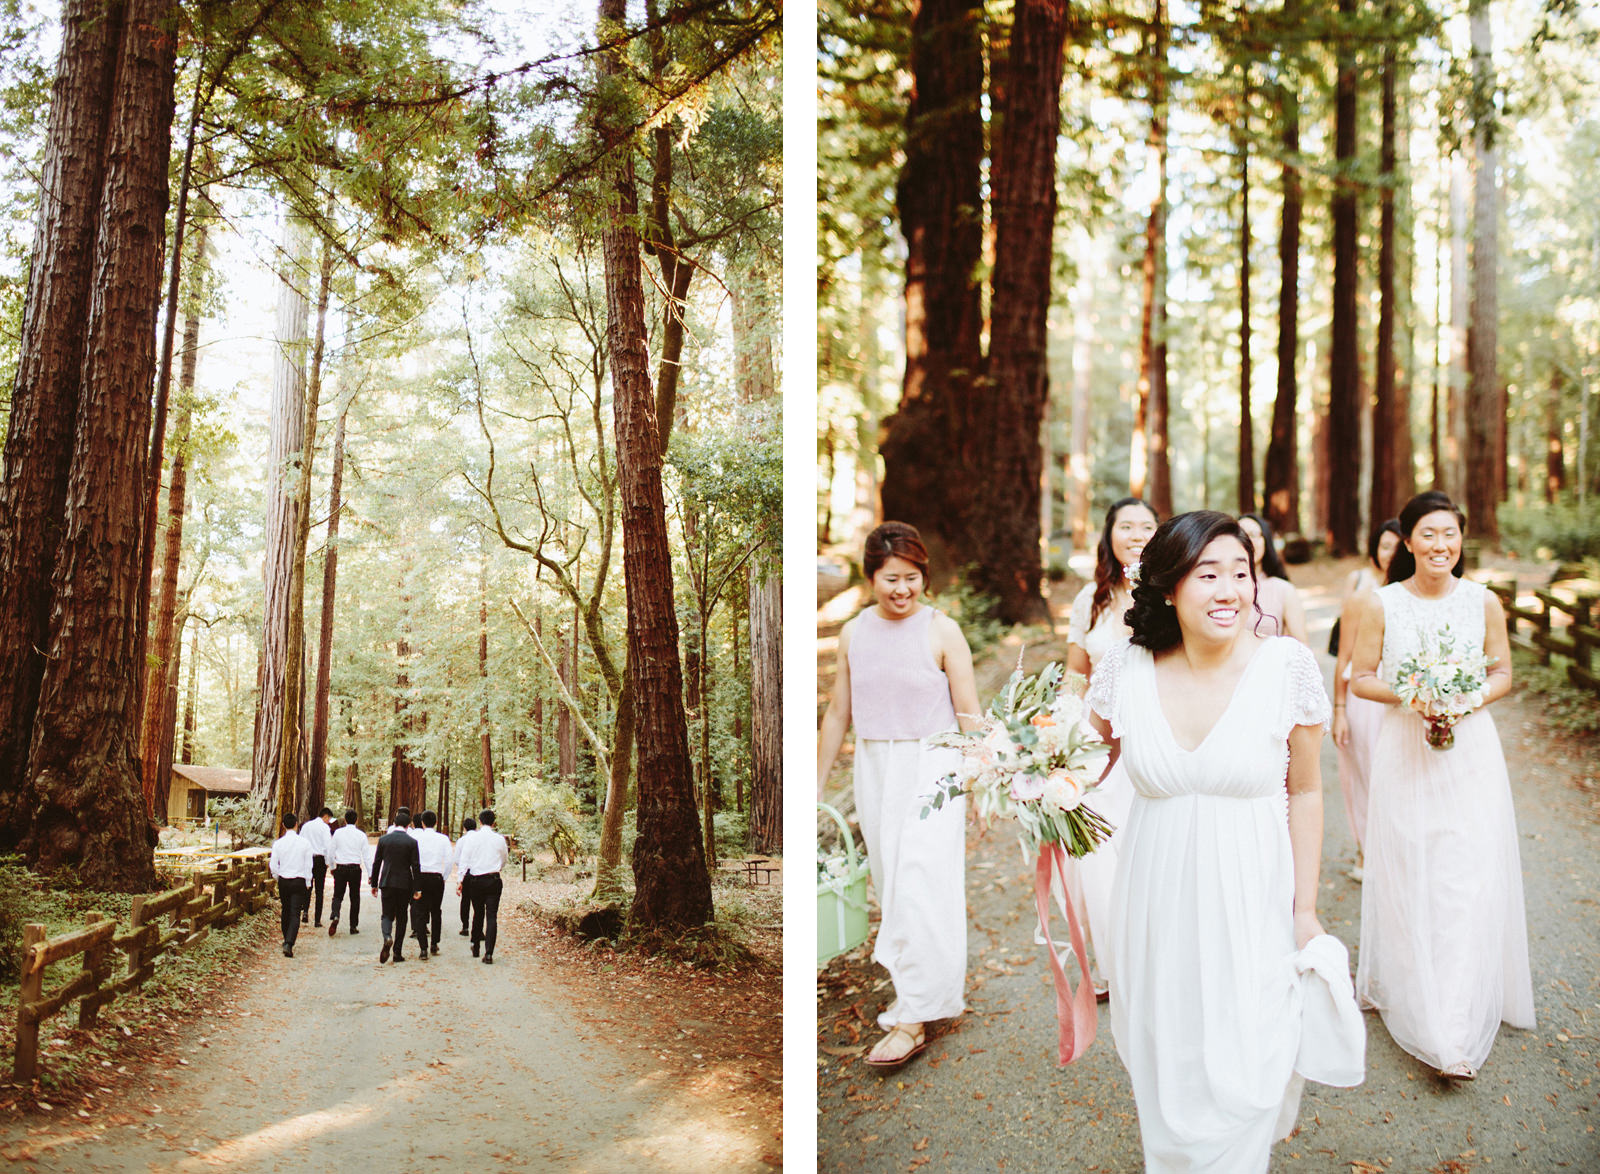 kimclay-blog-003 REDWOOD FOREST WEDDING